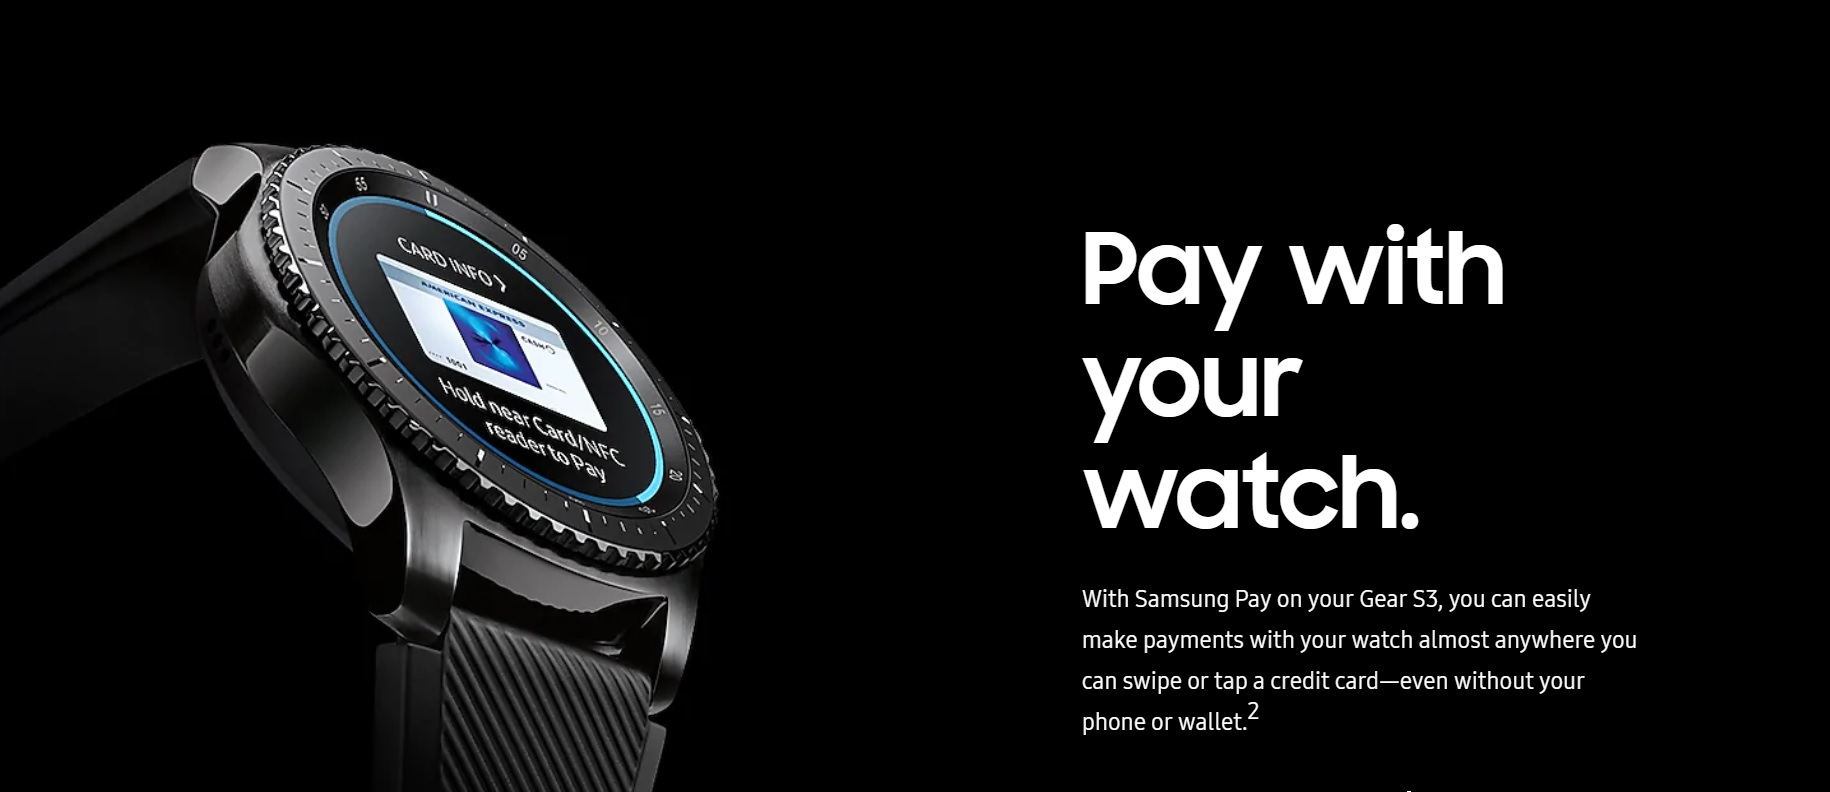 Samsung Gear S3 Frontier Pay with Your Watch